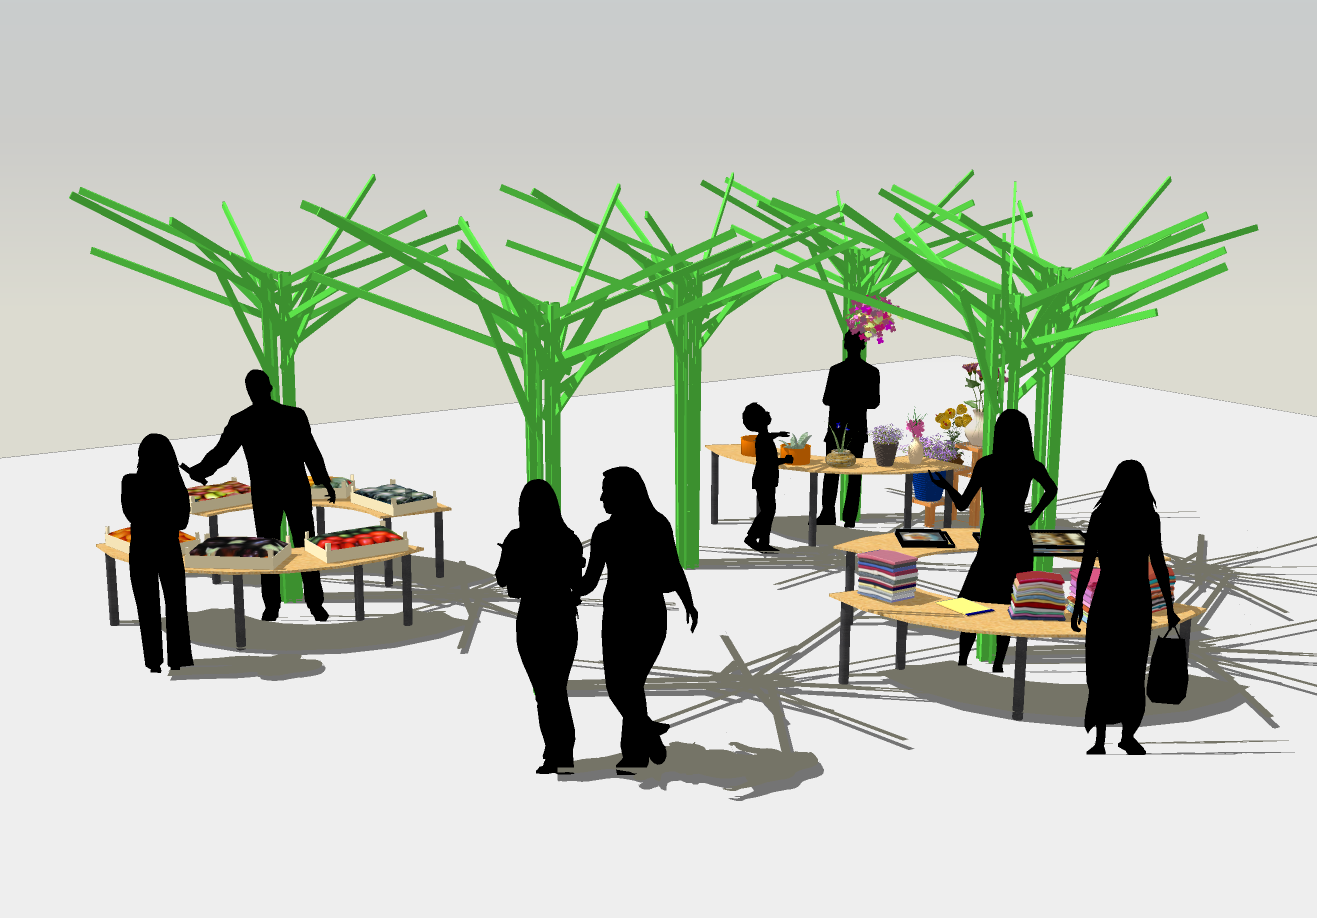 A standalone rendering of the marketplace and potential layout.